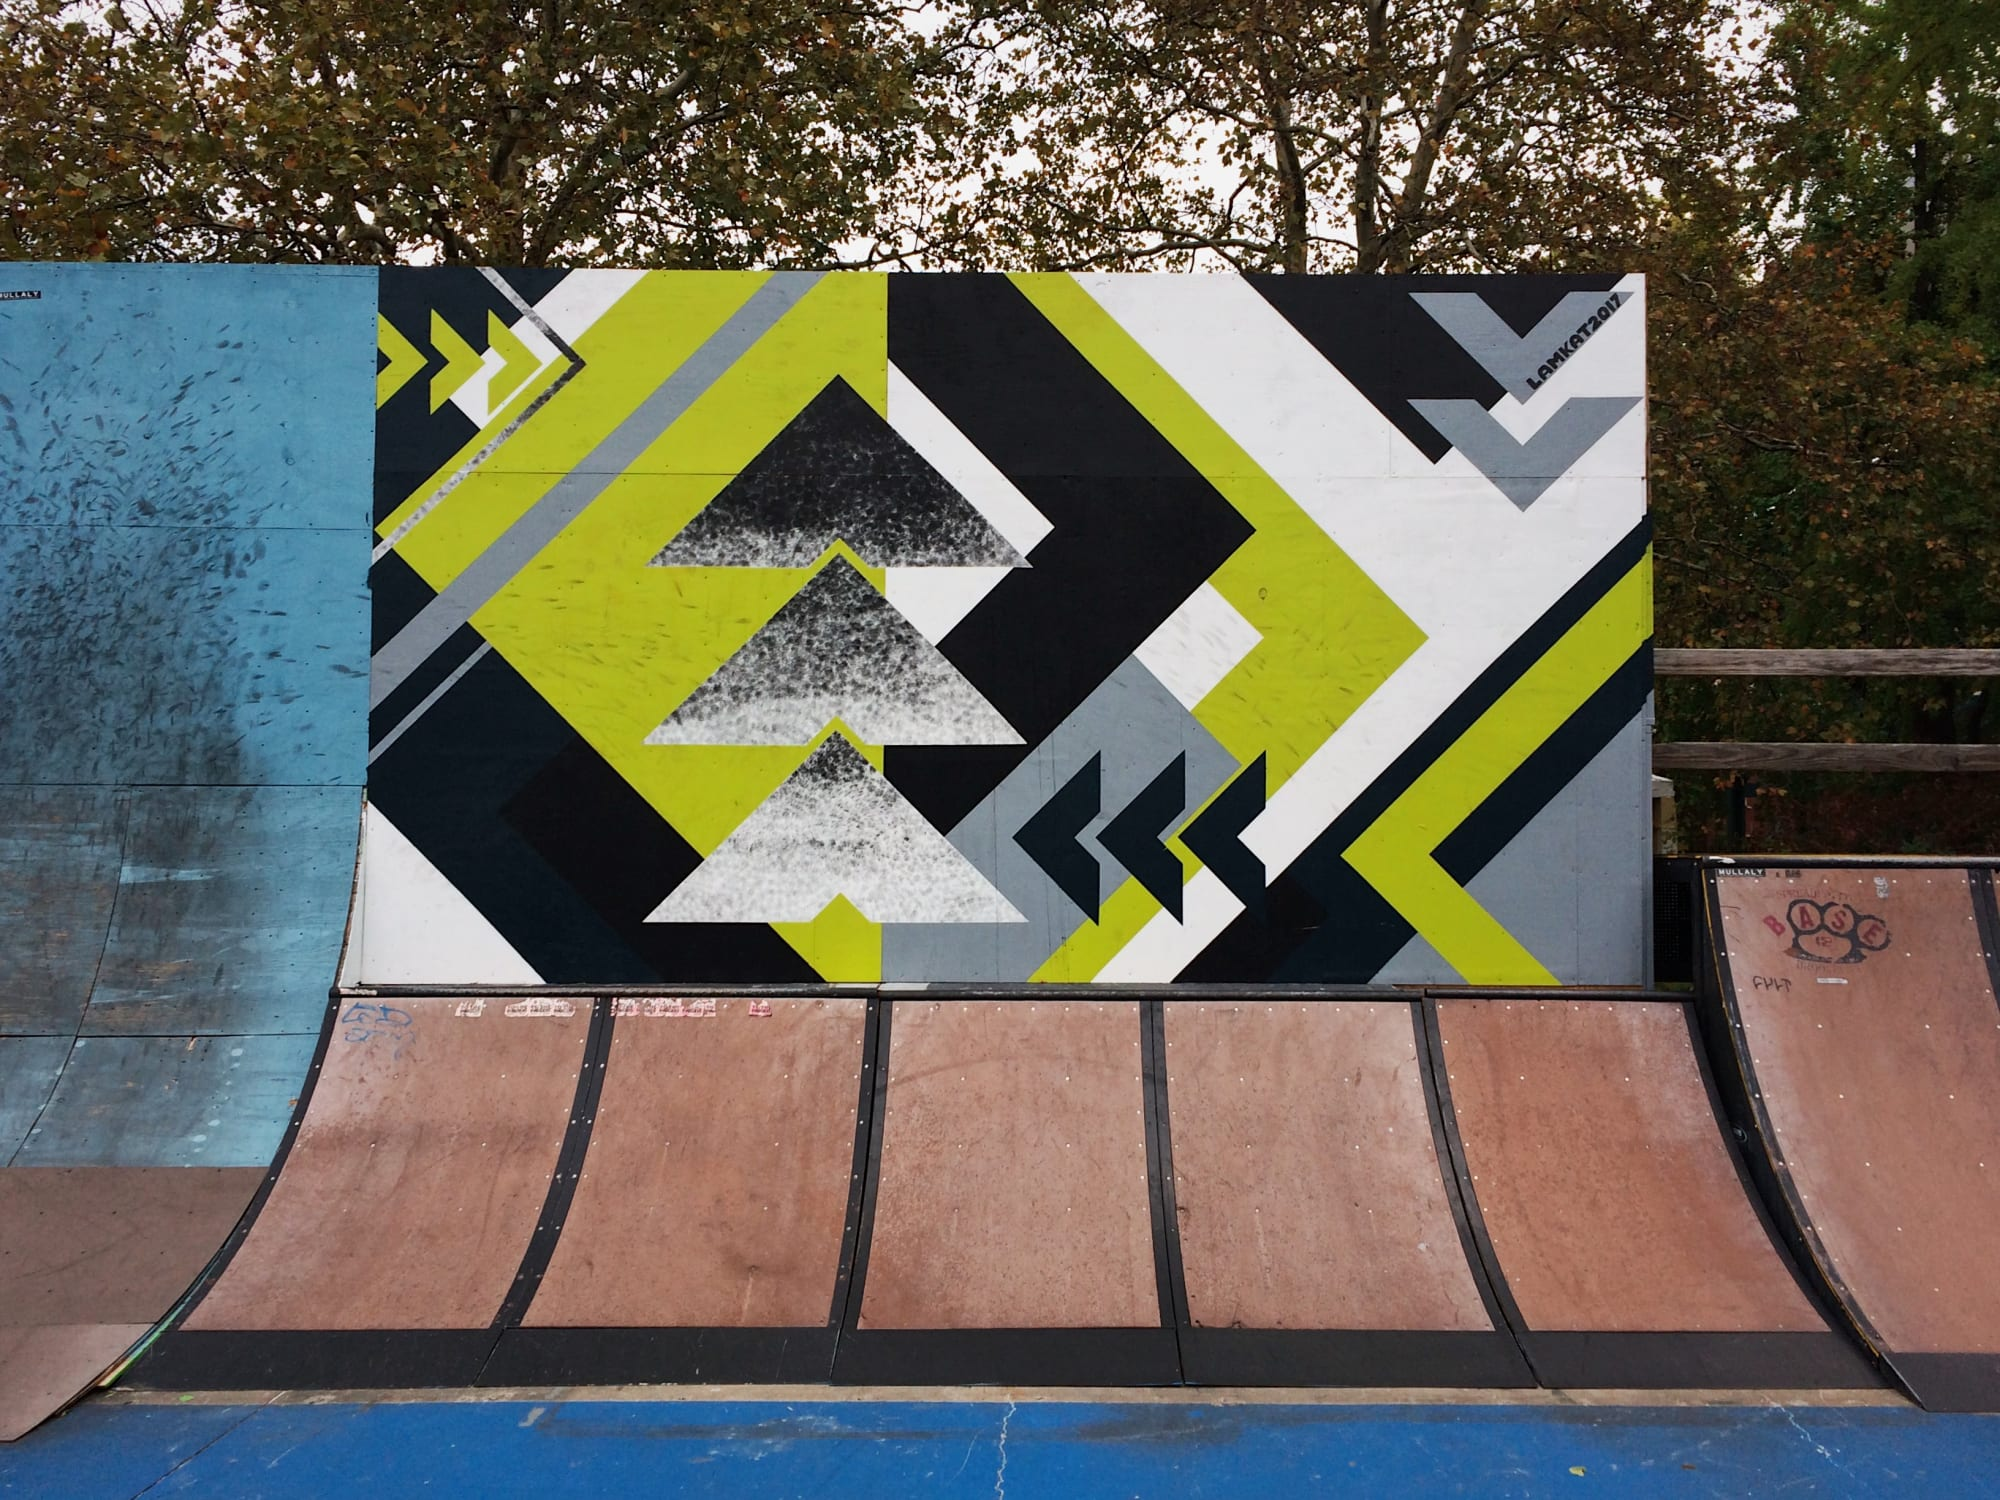 Mural by LAMKAT on display at Mullaly Skate Park. As seen on Wescover.